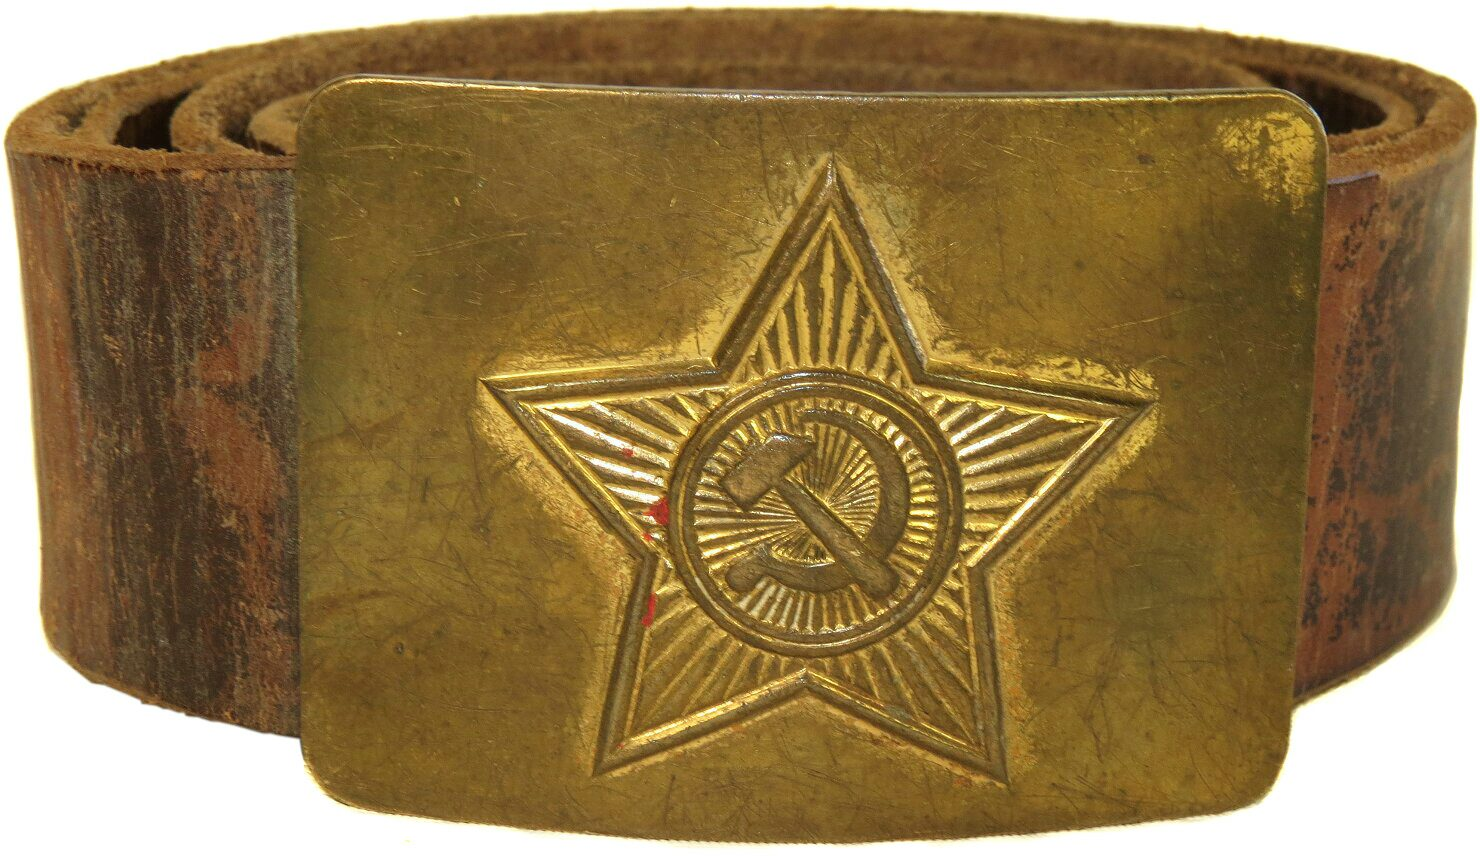 M36 belt and buckle for cadets of military schools- Belts & Buckles